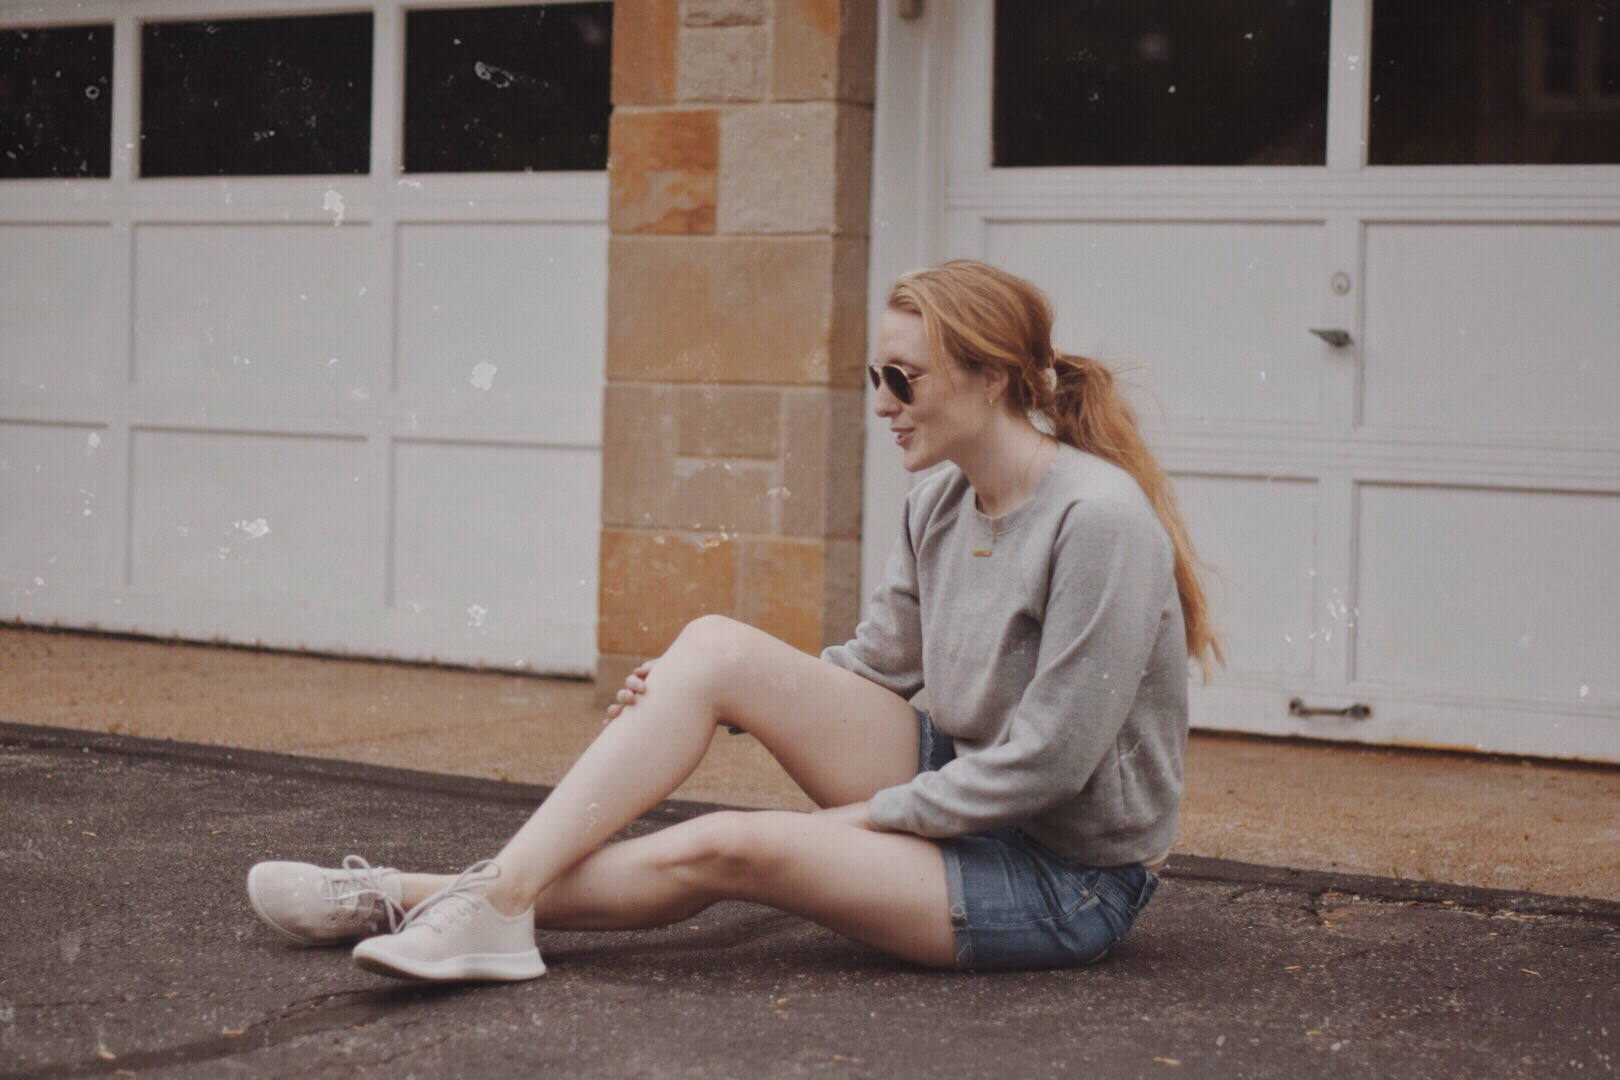 styling an easy casual summer outfit idea with sustainable fashion brands Everlane crewneck sweatshirt, Allbirds sneakers, cutoff shorts